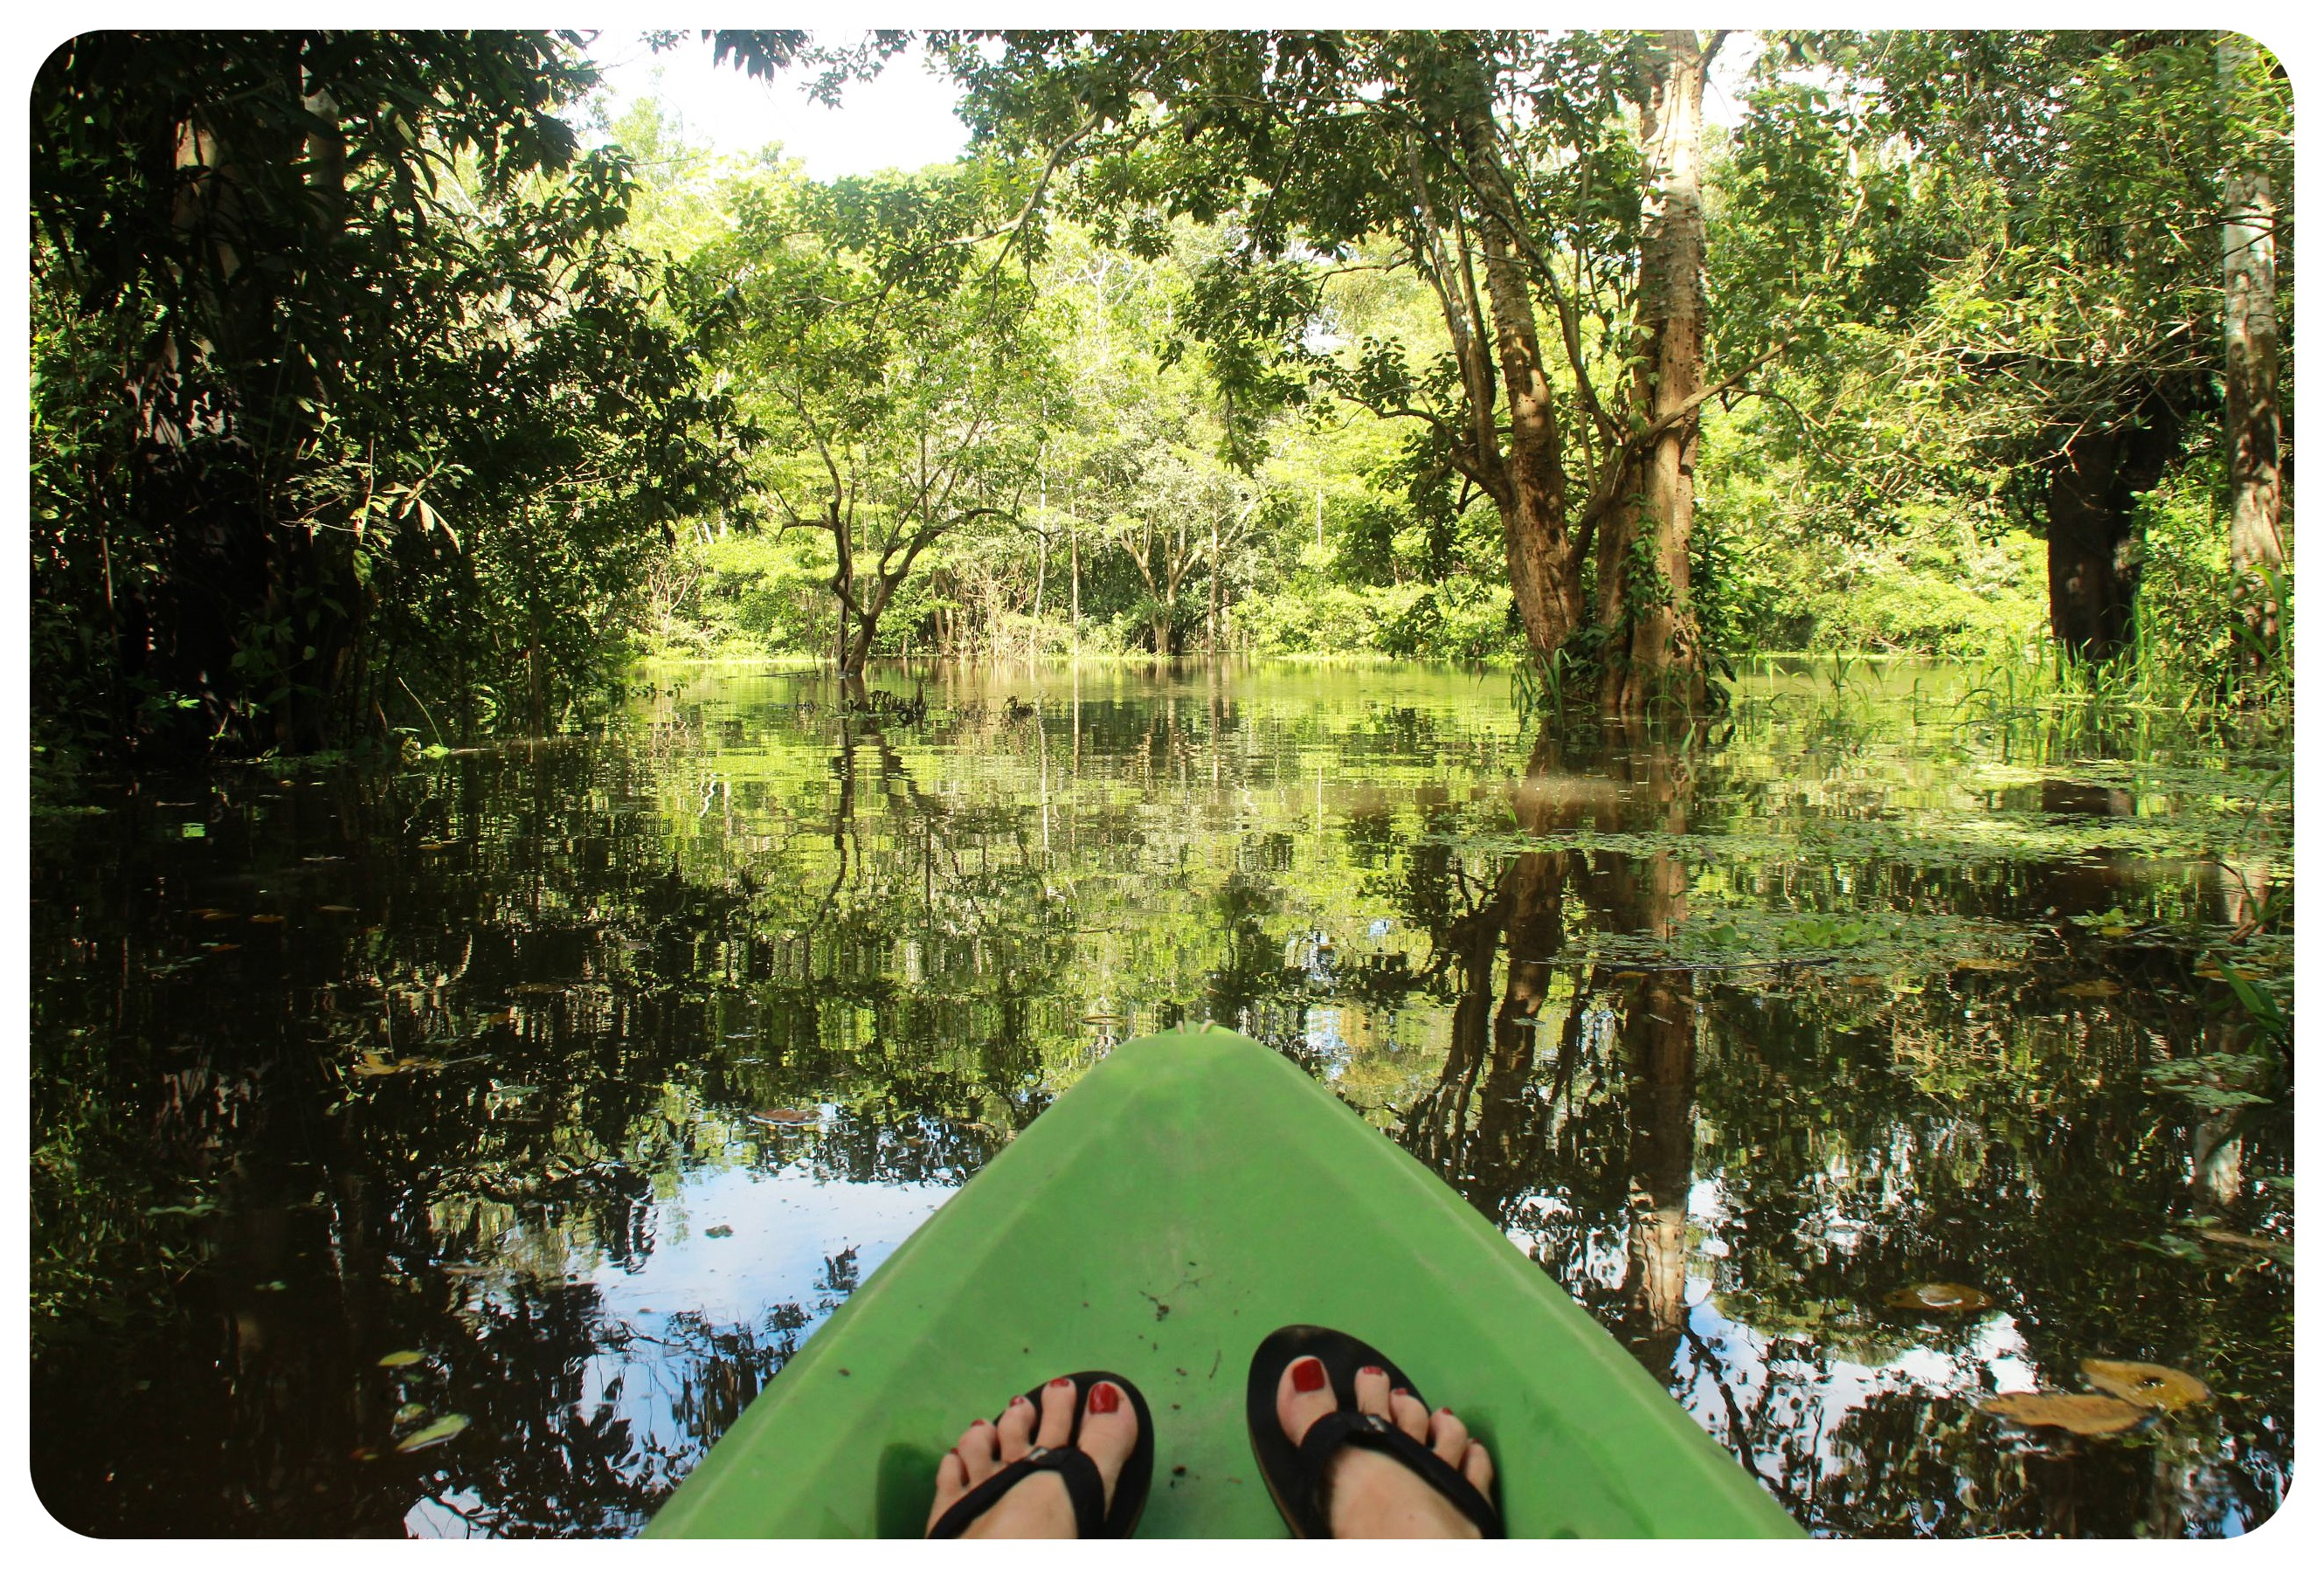 kayak trip amazon